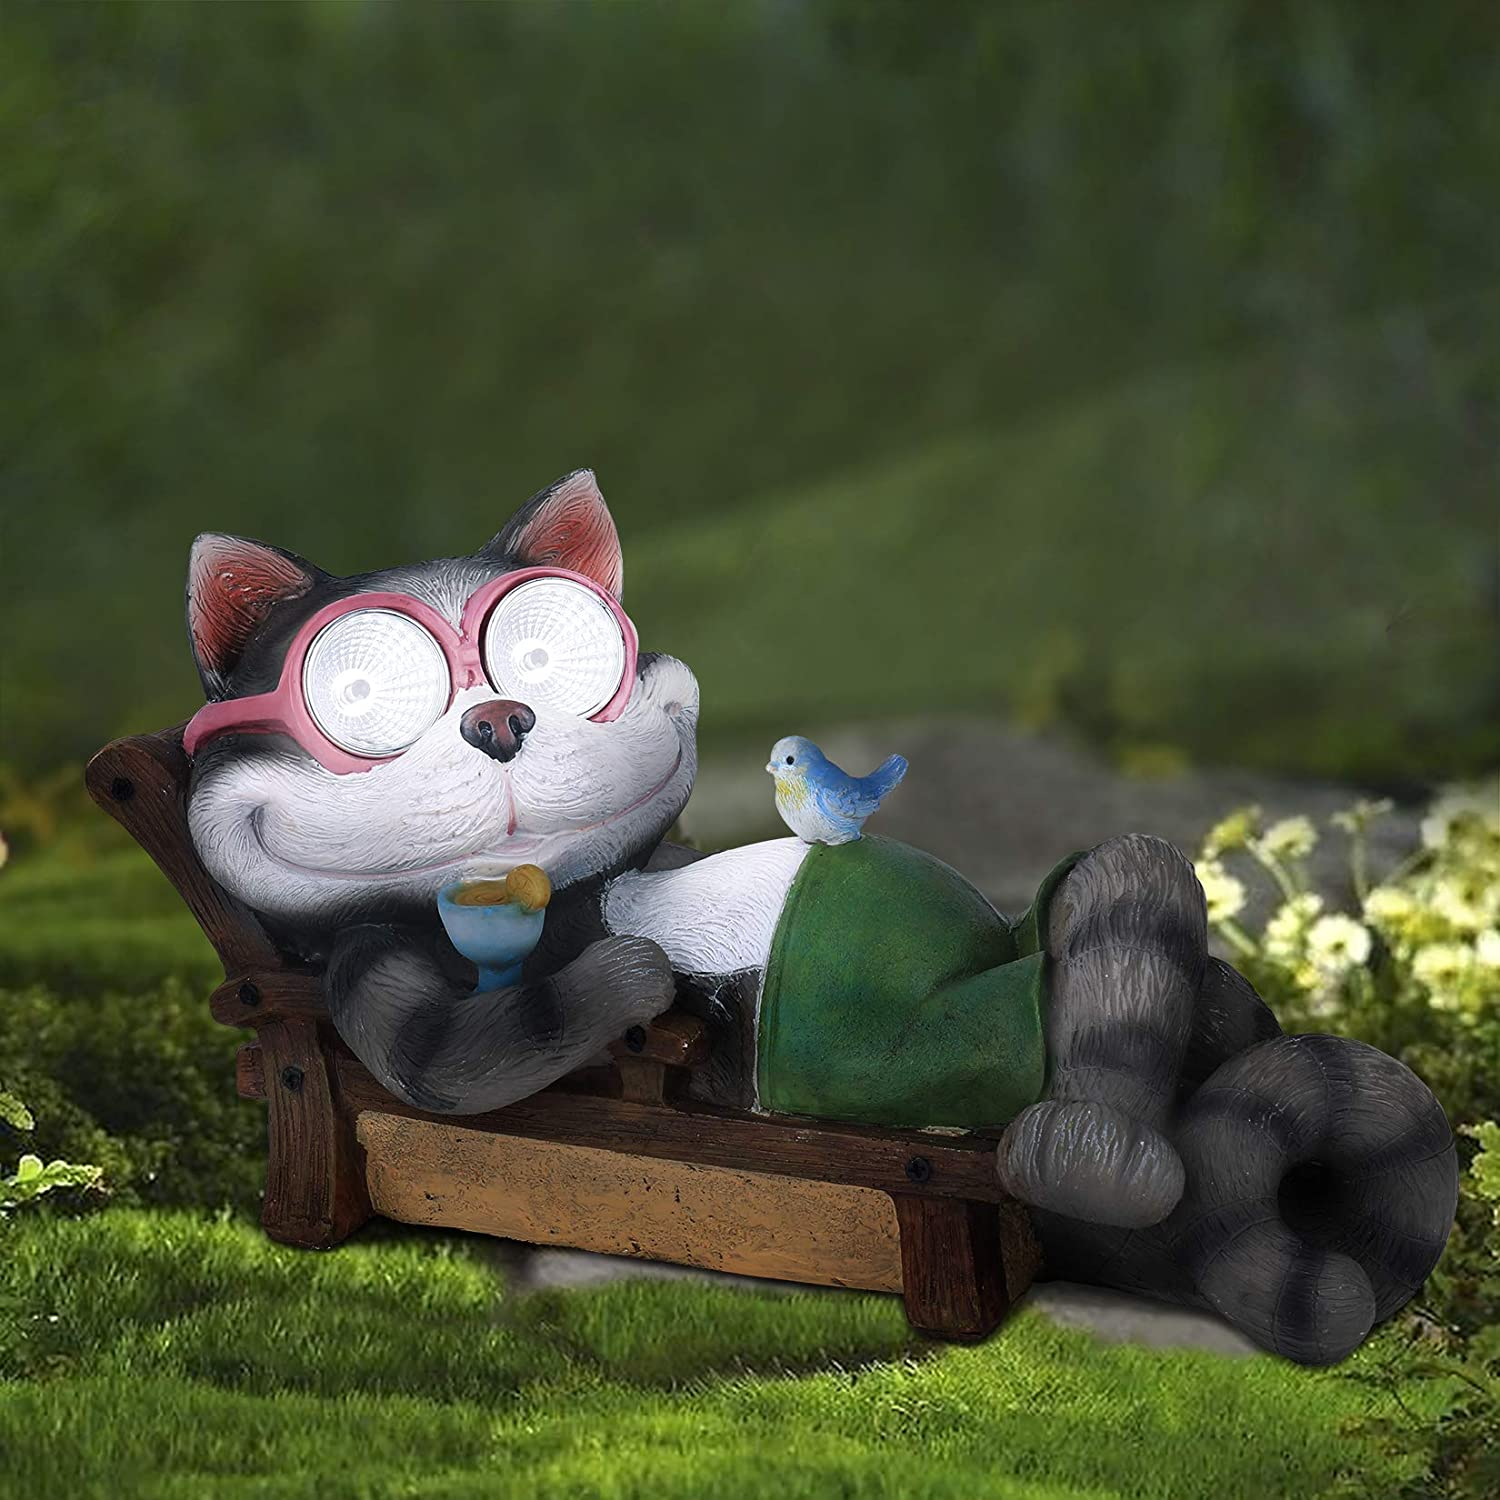 Garden Statue Cat Figurine - Lounging Cat on Holiday with Solar LED Lights for Outdoor Indoor Decoration, Resin Kitten Figurine for Patio Yard Lawn, Ornament Gift